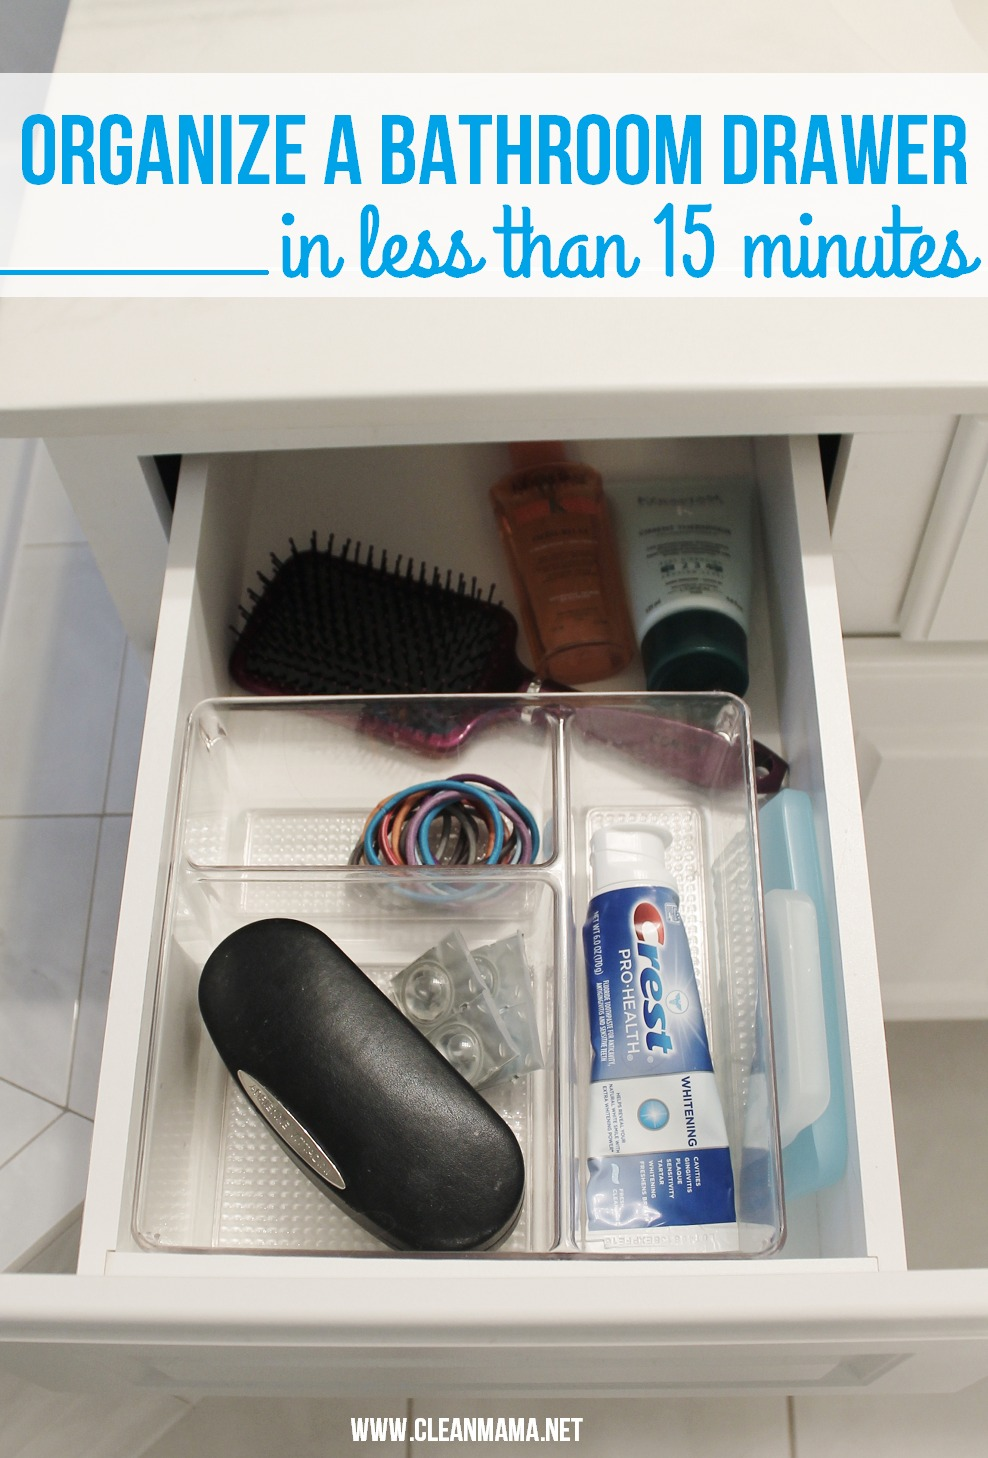 Organize A 6 Month Capsule Wardrobe For Fall And Winter: Organize A Bathroom Drawer In Less Than 15 Minutes